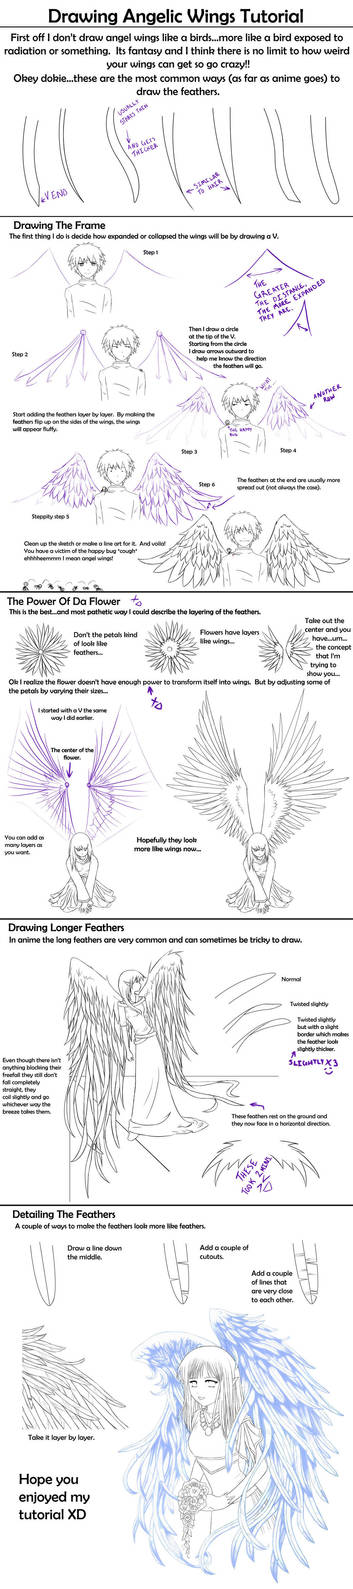 Drawing Angelic Wings Tutorial by Crysa